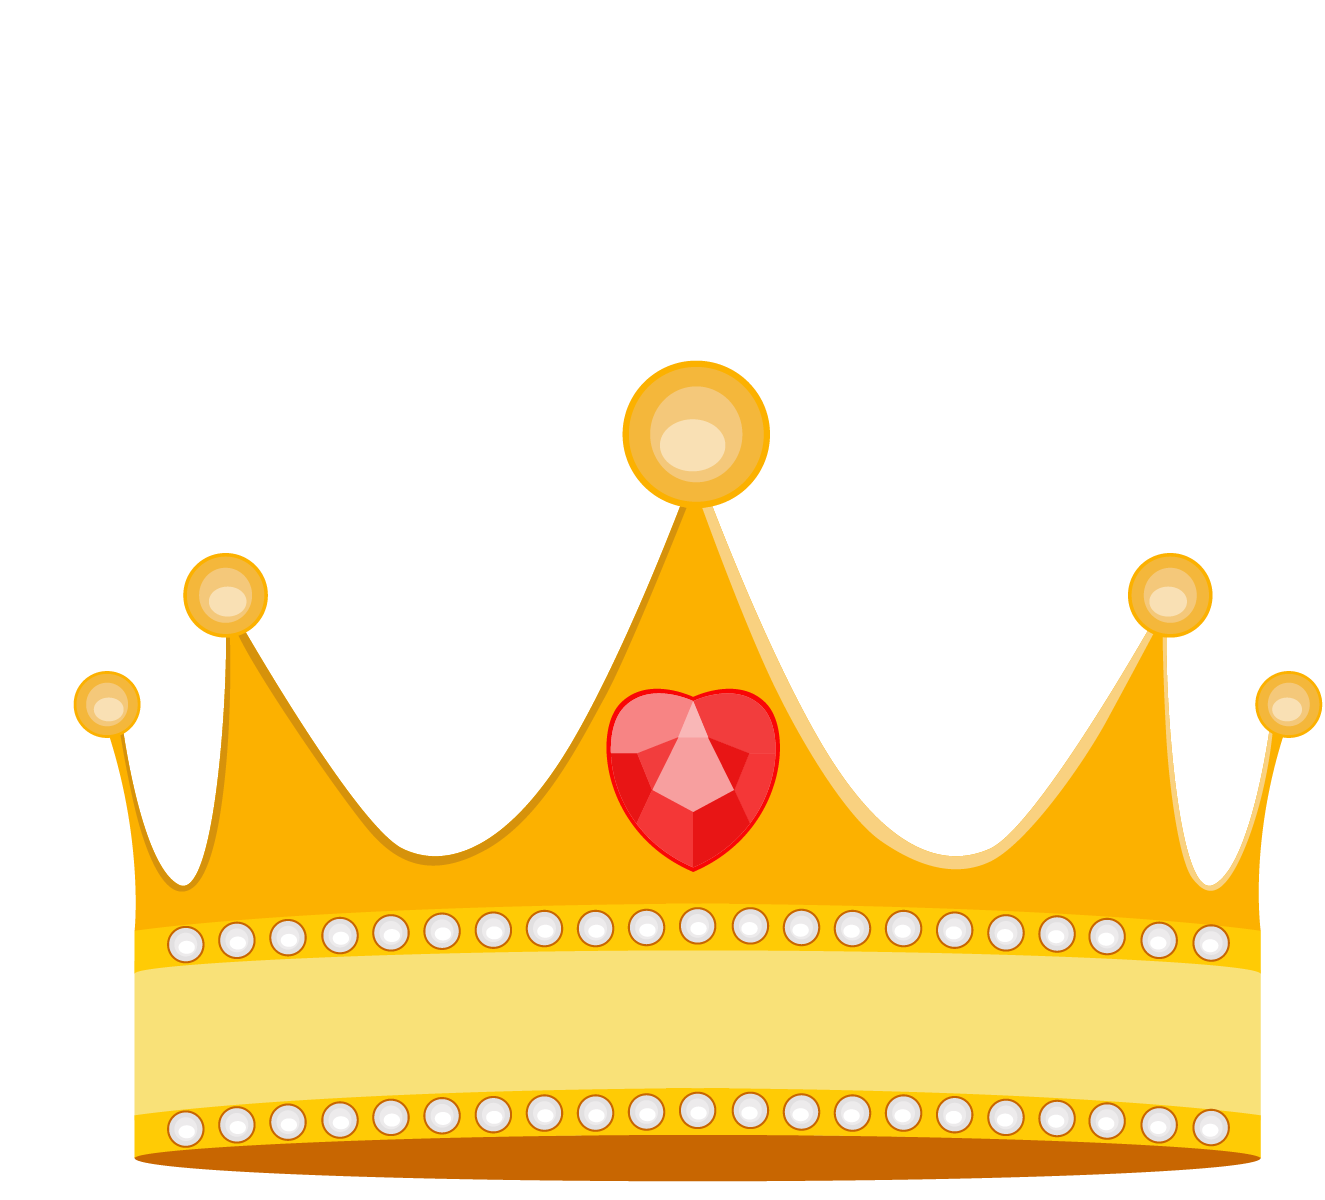 Burger king crown clipart png download Cartoon princess crown vector material 1325*1200 transprent Png Free ... png download